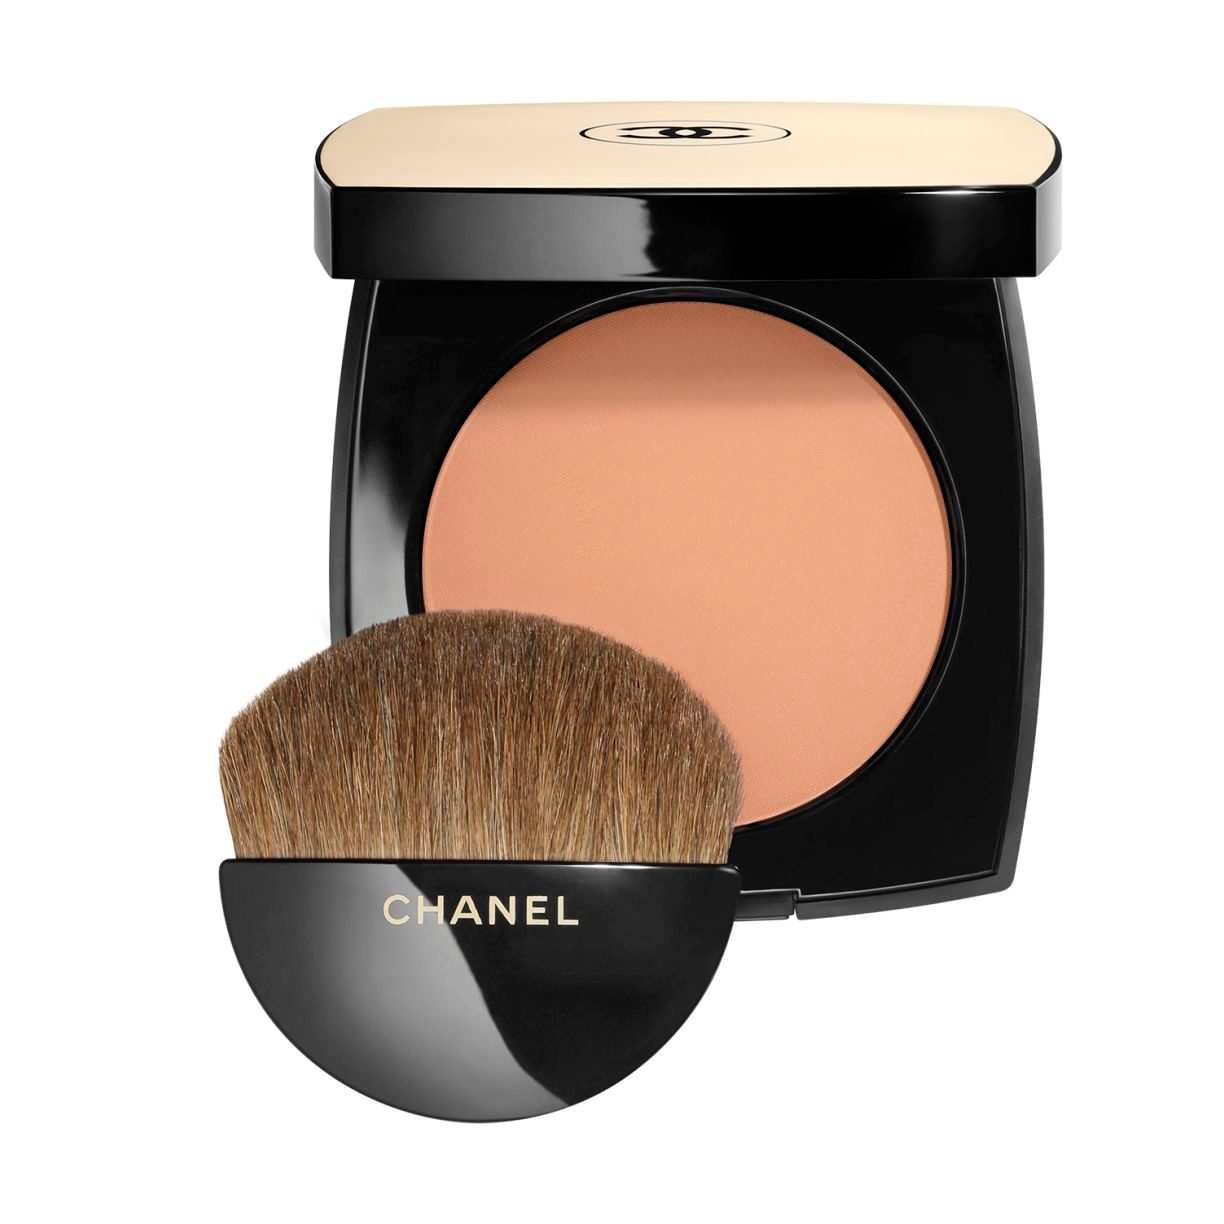 LES BEIGES HEALTHY GLOW SHEER POWDER SPF 15 / PA++